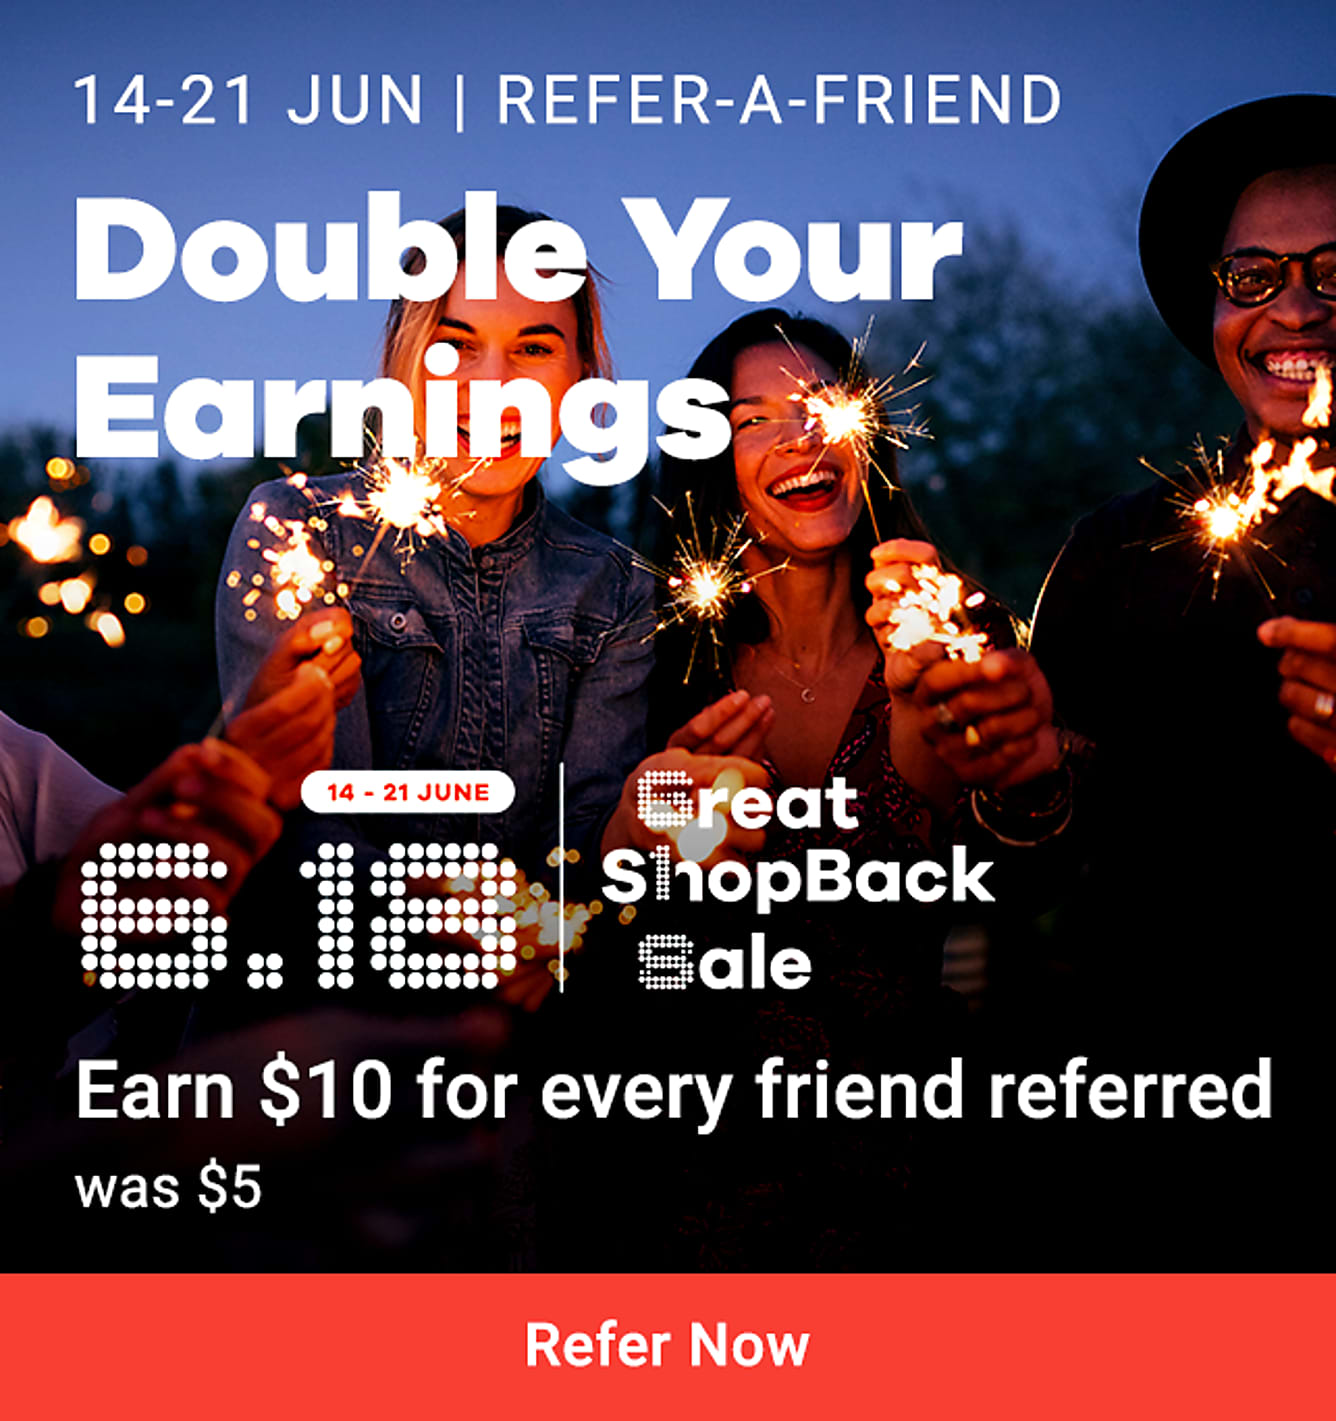 RAF refer a friend